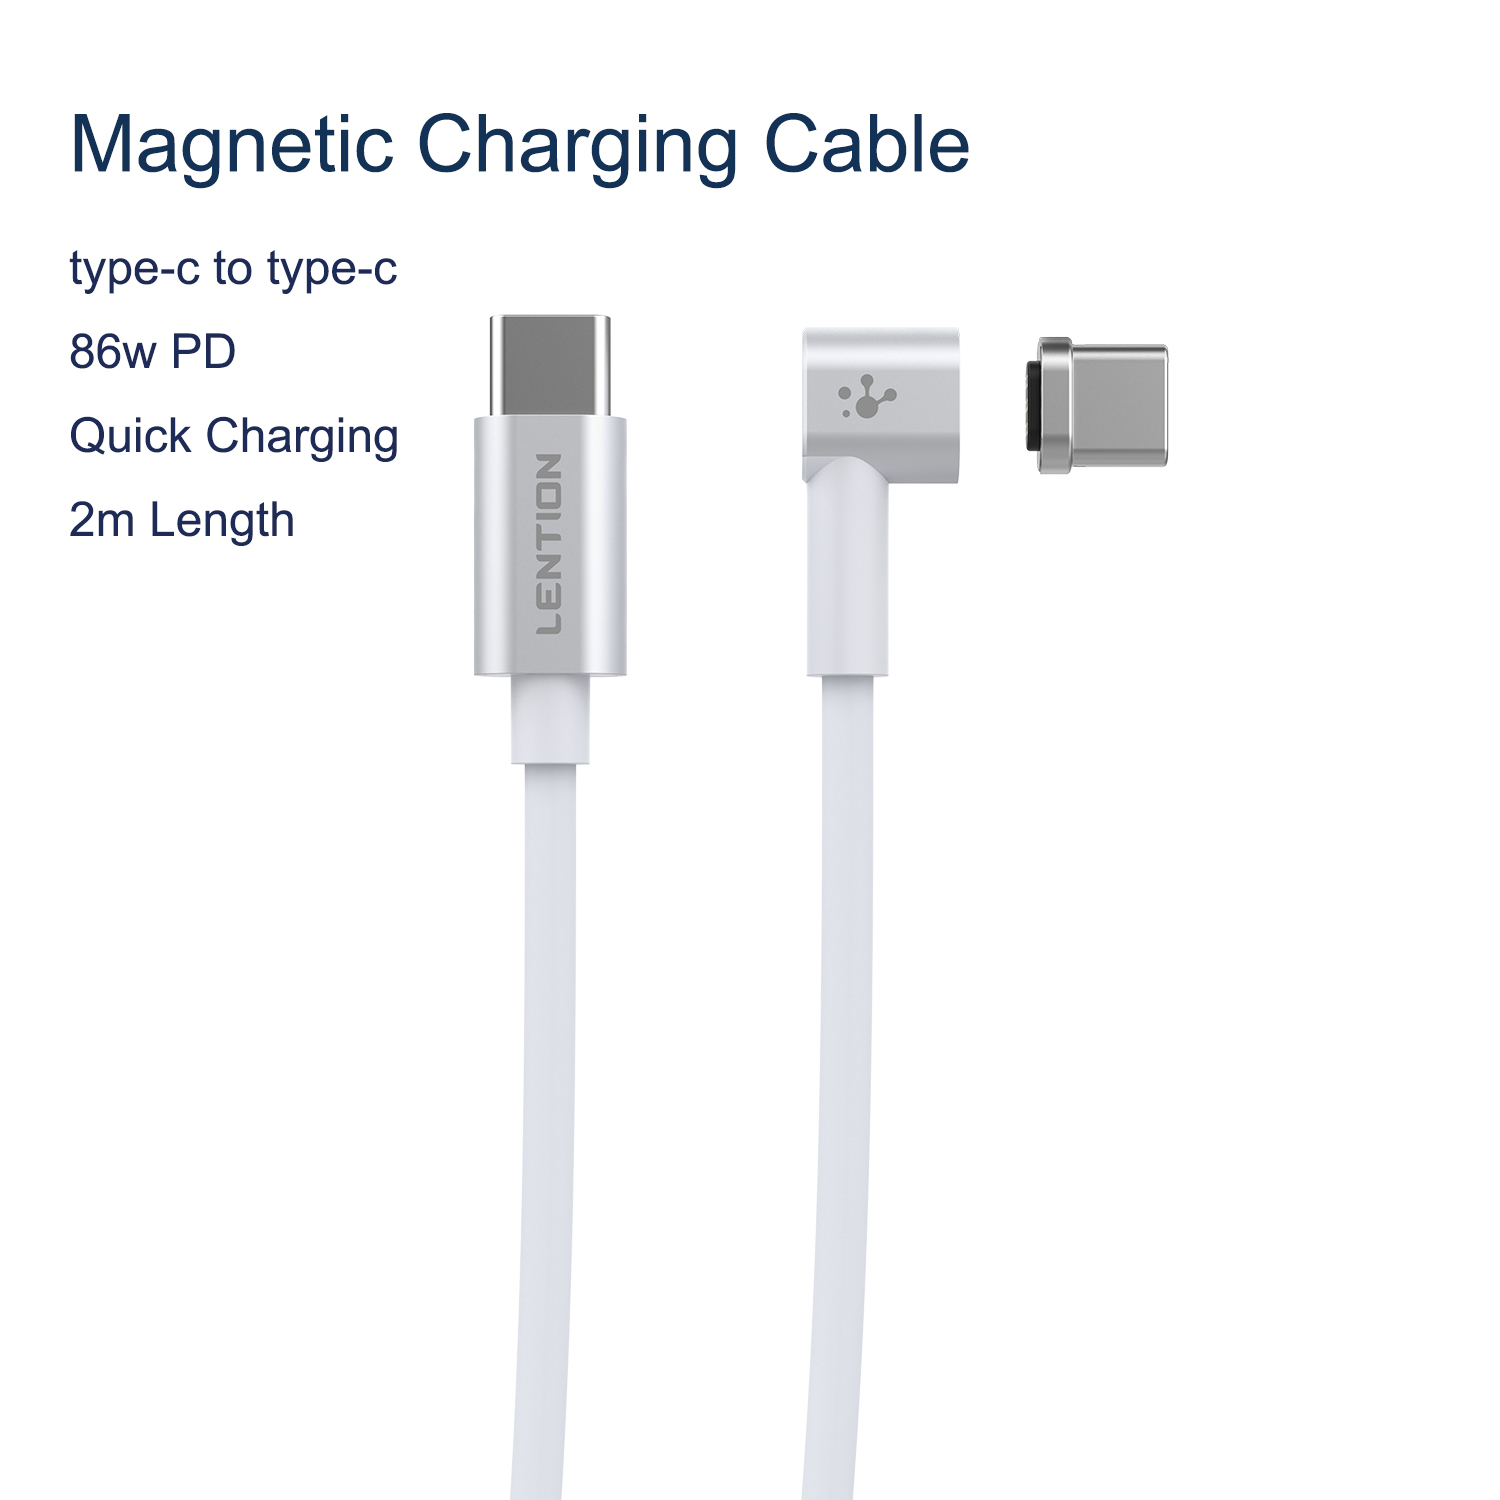 86W USB C Cable To Type C Magnetic 2M Cable For Macbook Huawei Mate 20 Pro OnePlus 6 Fast Charging Magnet Type C ConnectorMobile Phone Cables   -